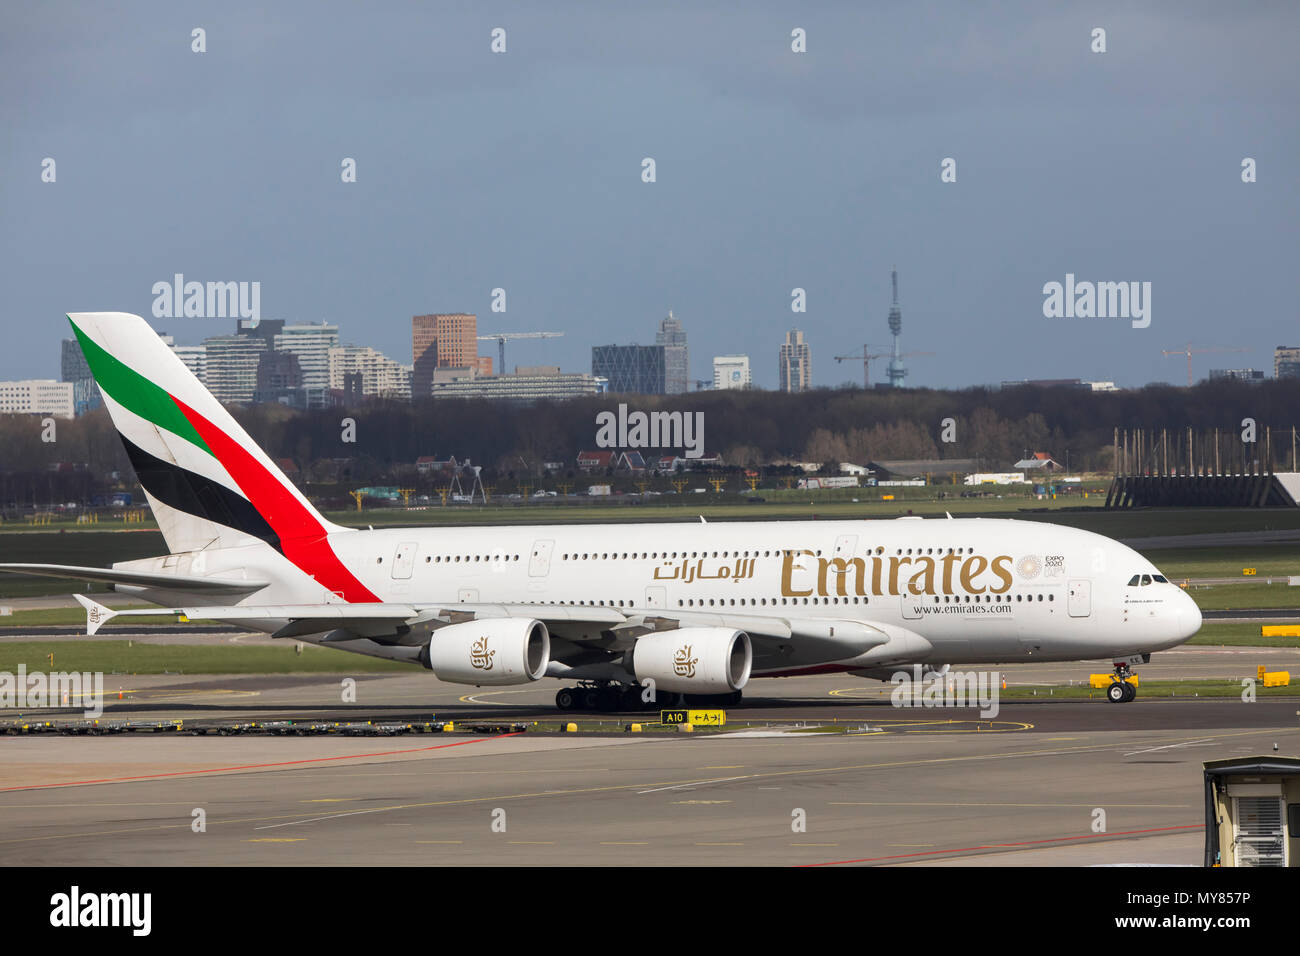 Emirates Airbus A 380-800, aircraft, at Amsterdam Schiphol Airport, in North Holland, Netherlands, - Stock Image